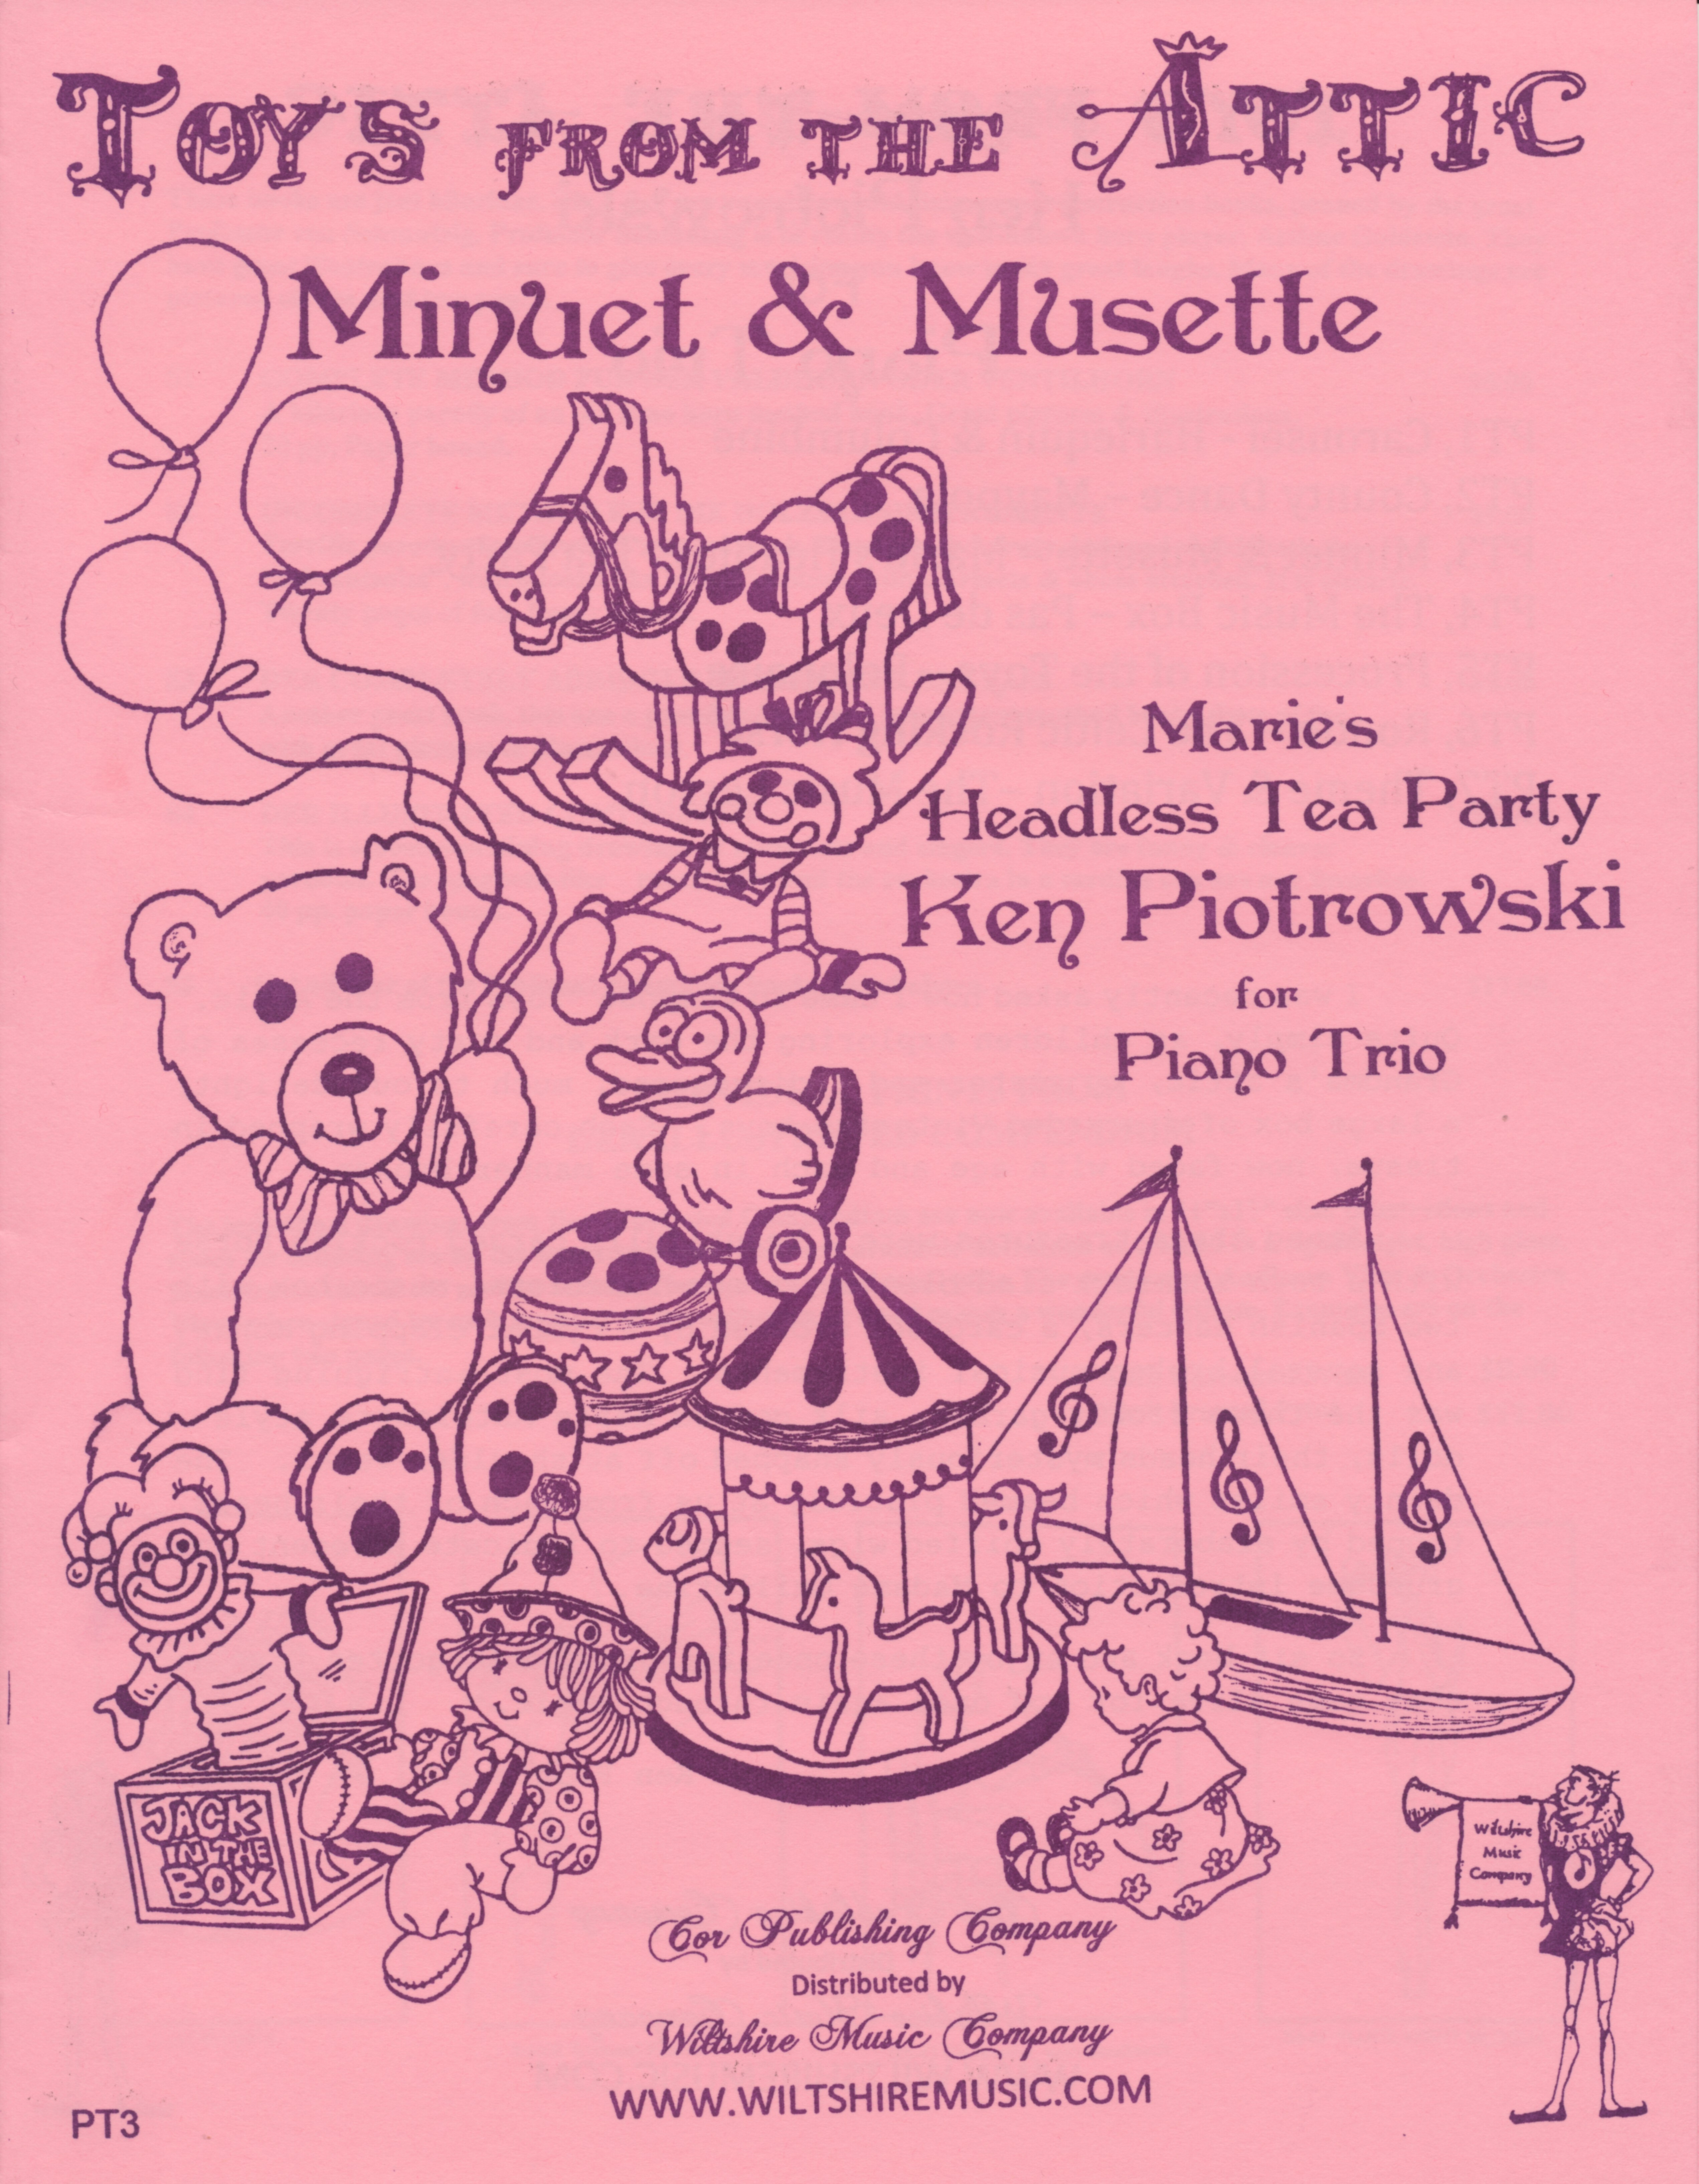 Minuet & Musette, Marie's Headless Tea Party, Ken Piotrowski